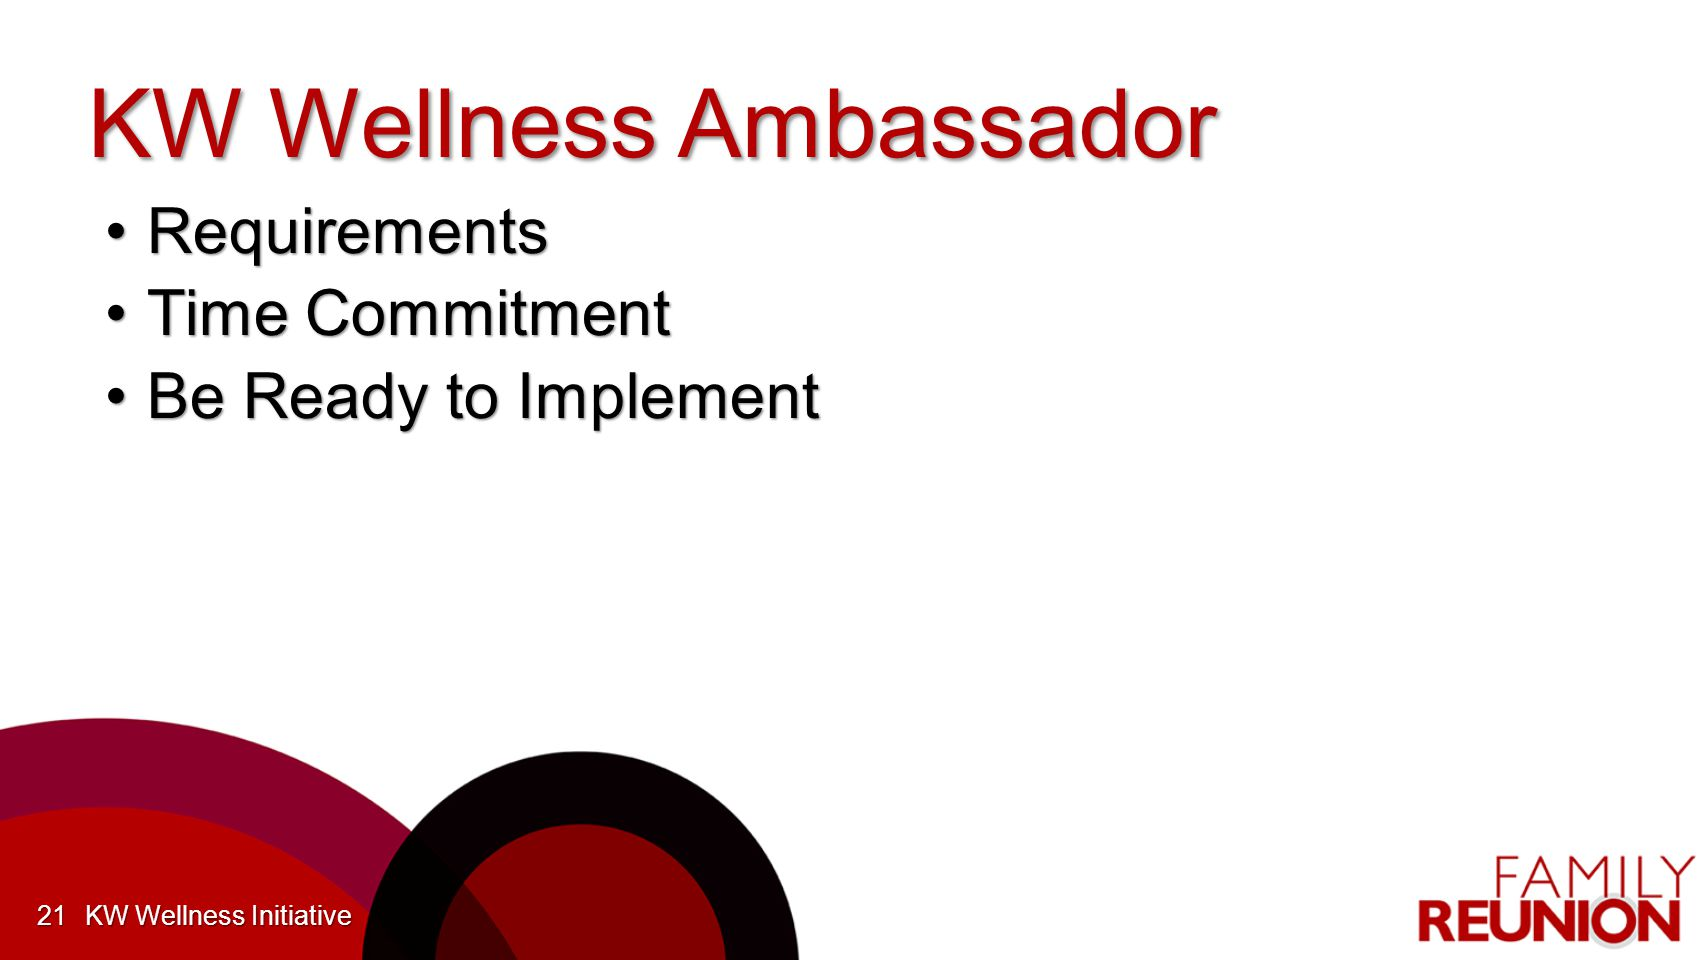 KW Wellness Ambassador RequirementsRequirements Time CommitmentTime Commitment Be Ready to ImplementBe Ready to Implement KW Wellness Initiative21